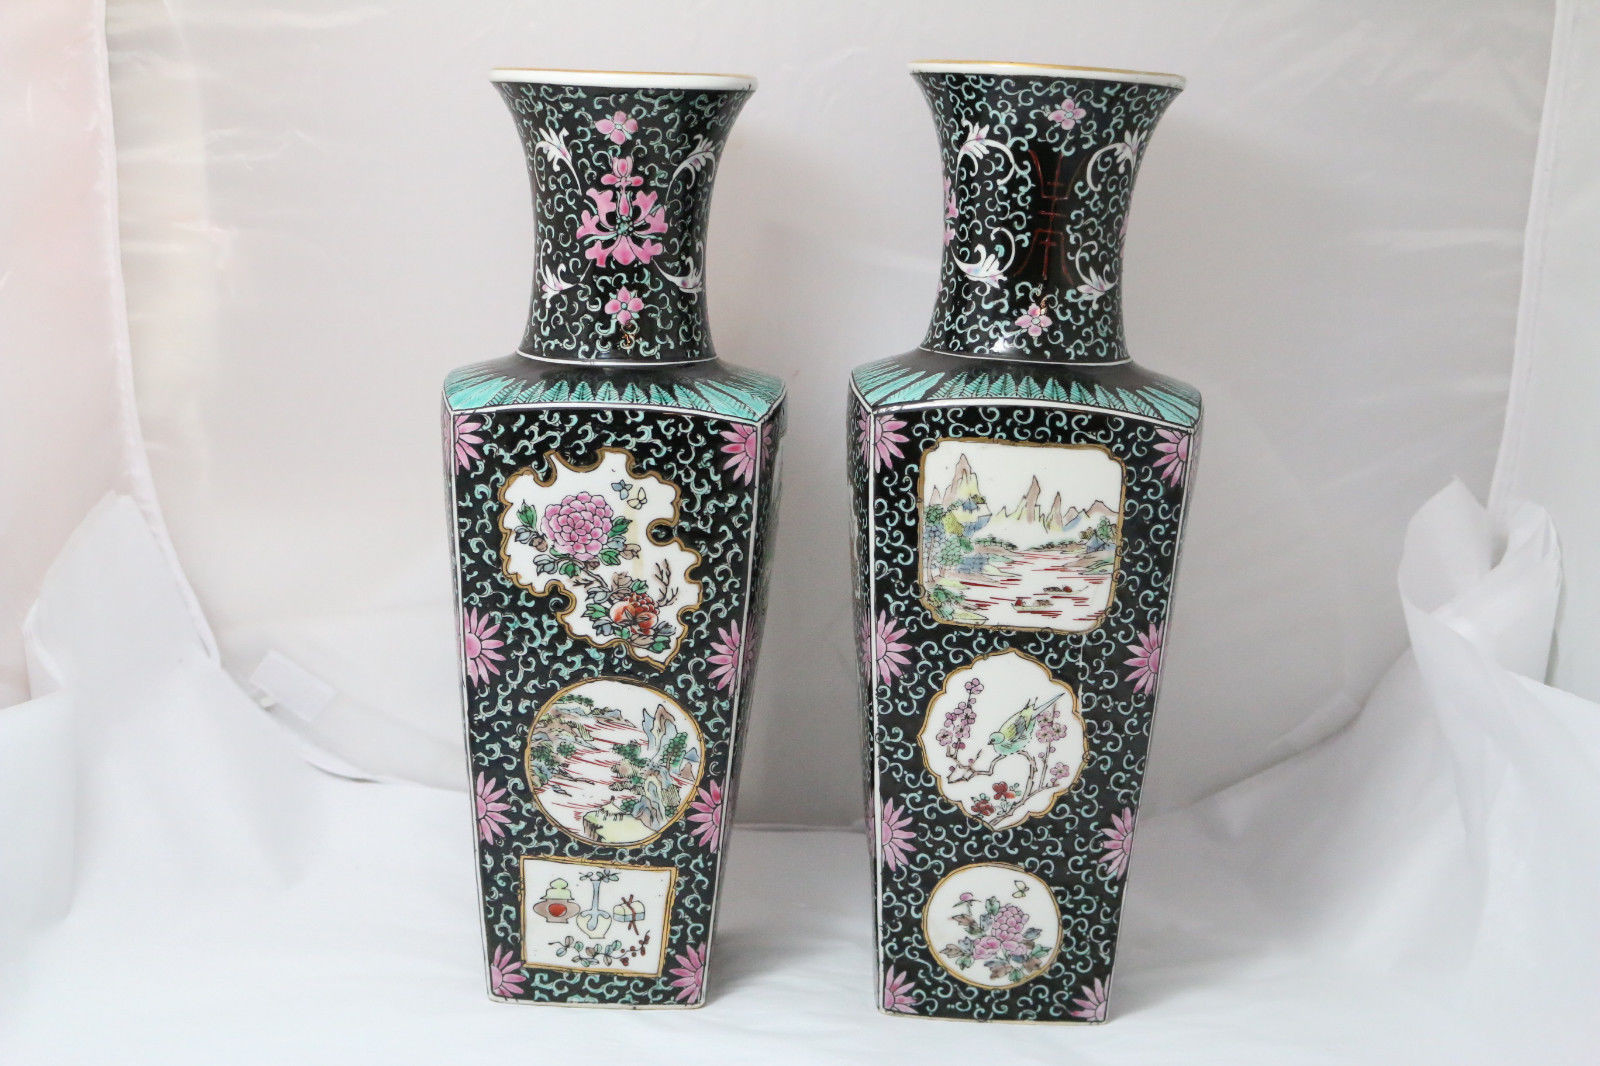 Antique Chinese Porcelain Vases Of Vintage Chinese oriental Square Base Vases W asian Motifs 50 00 Regarding Vintage Chinese oriental Square Base Vases W asian Motifs 1 Of 8only 1 Available